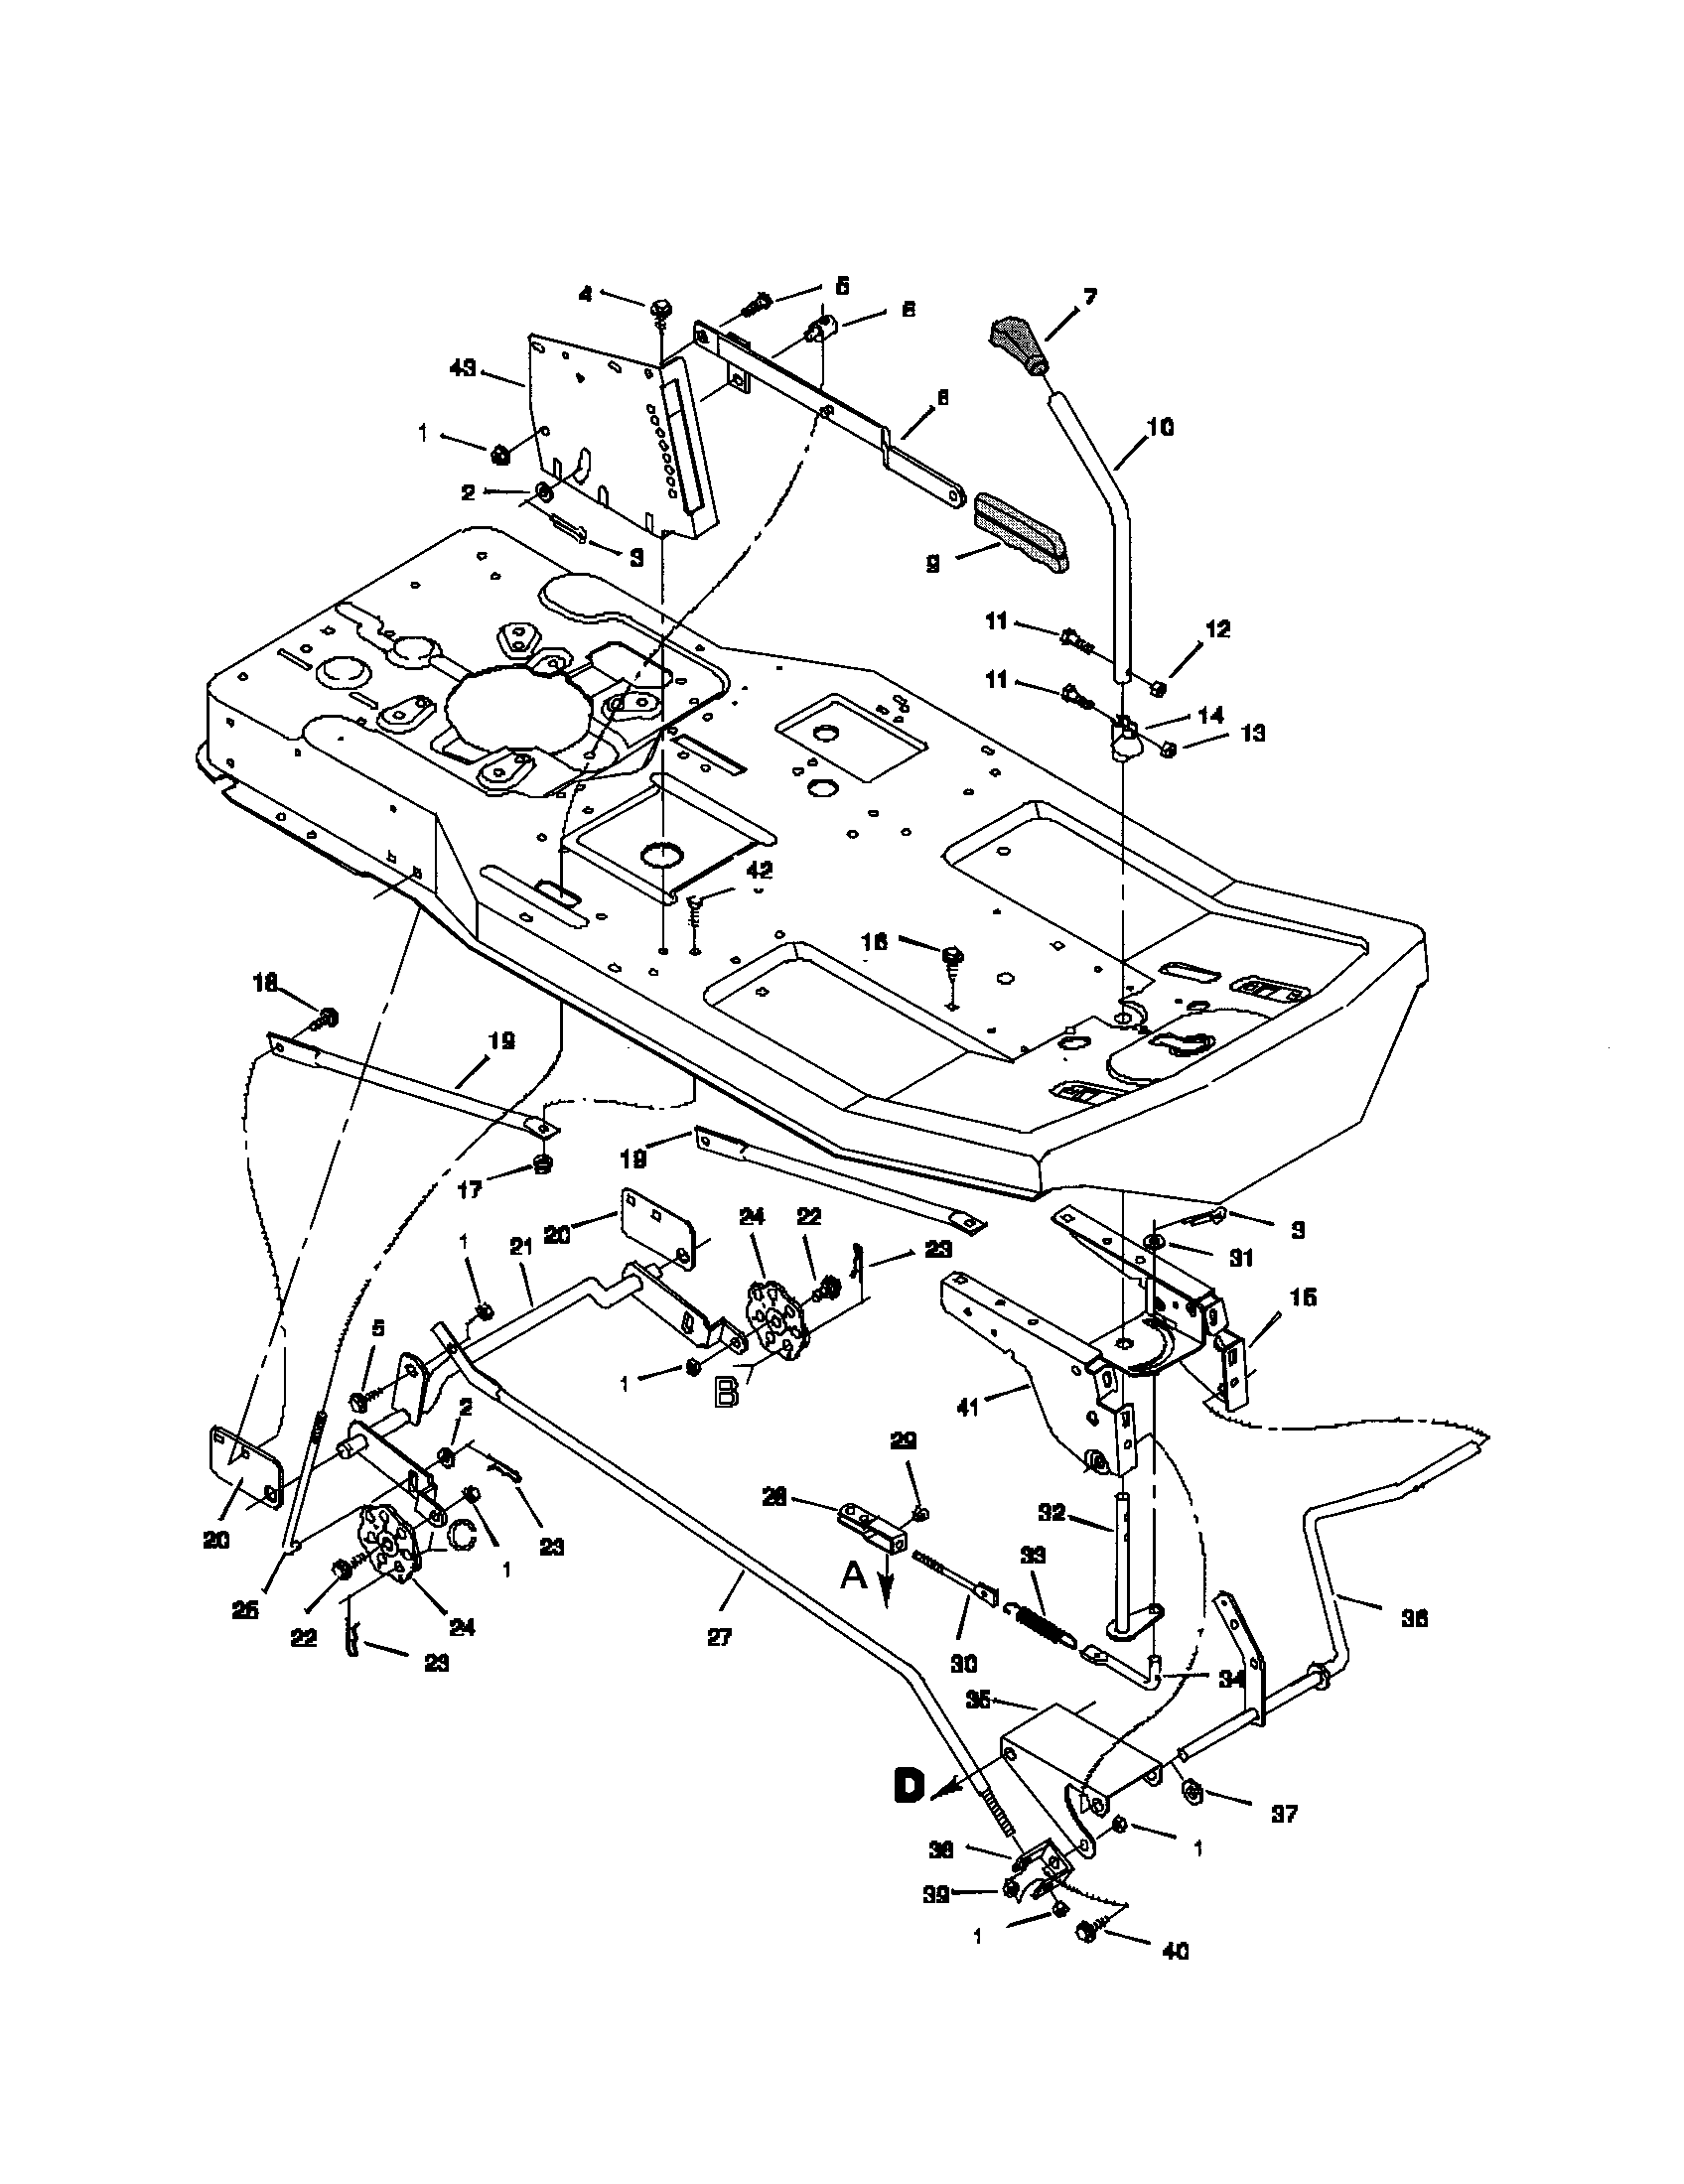 Snapper Riding Lawn Mower Wiring Diagram besides Wheel Horse Deck Parts Diagram together with Diagram Of A Lawn Mower Engine as well Lawn Mower Wiring Schematic further Carburetor No 632078a. on murray rear engine riding mower parts